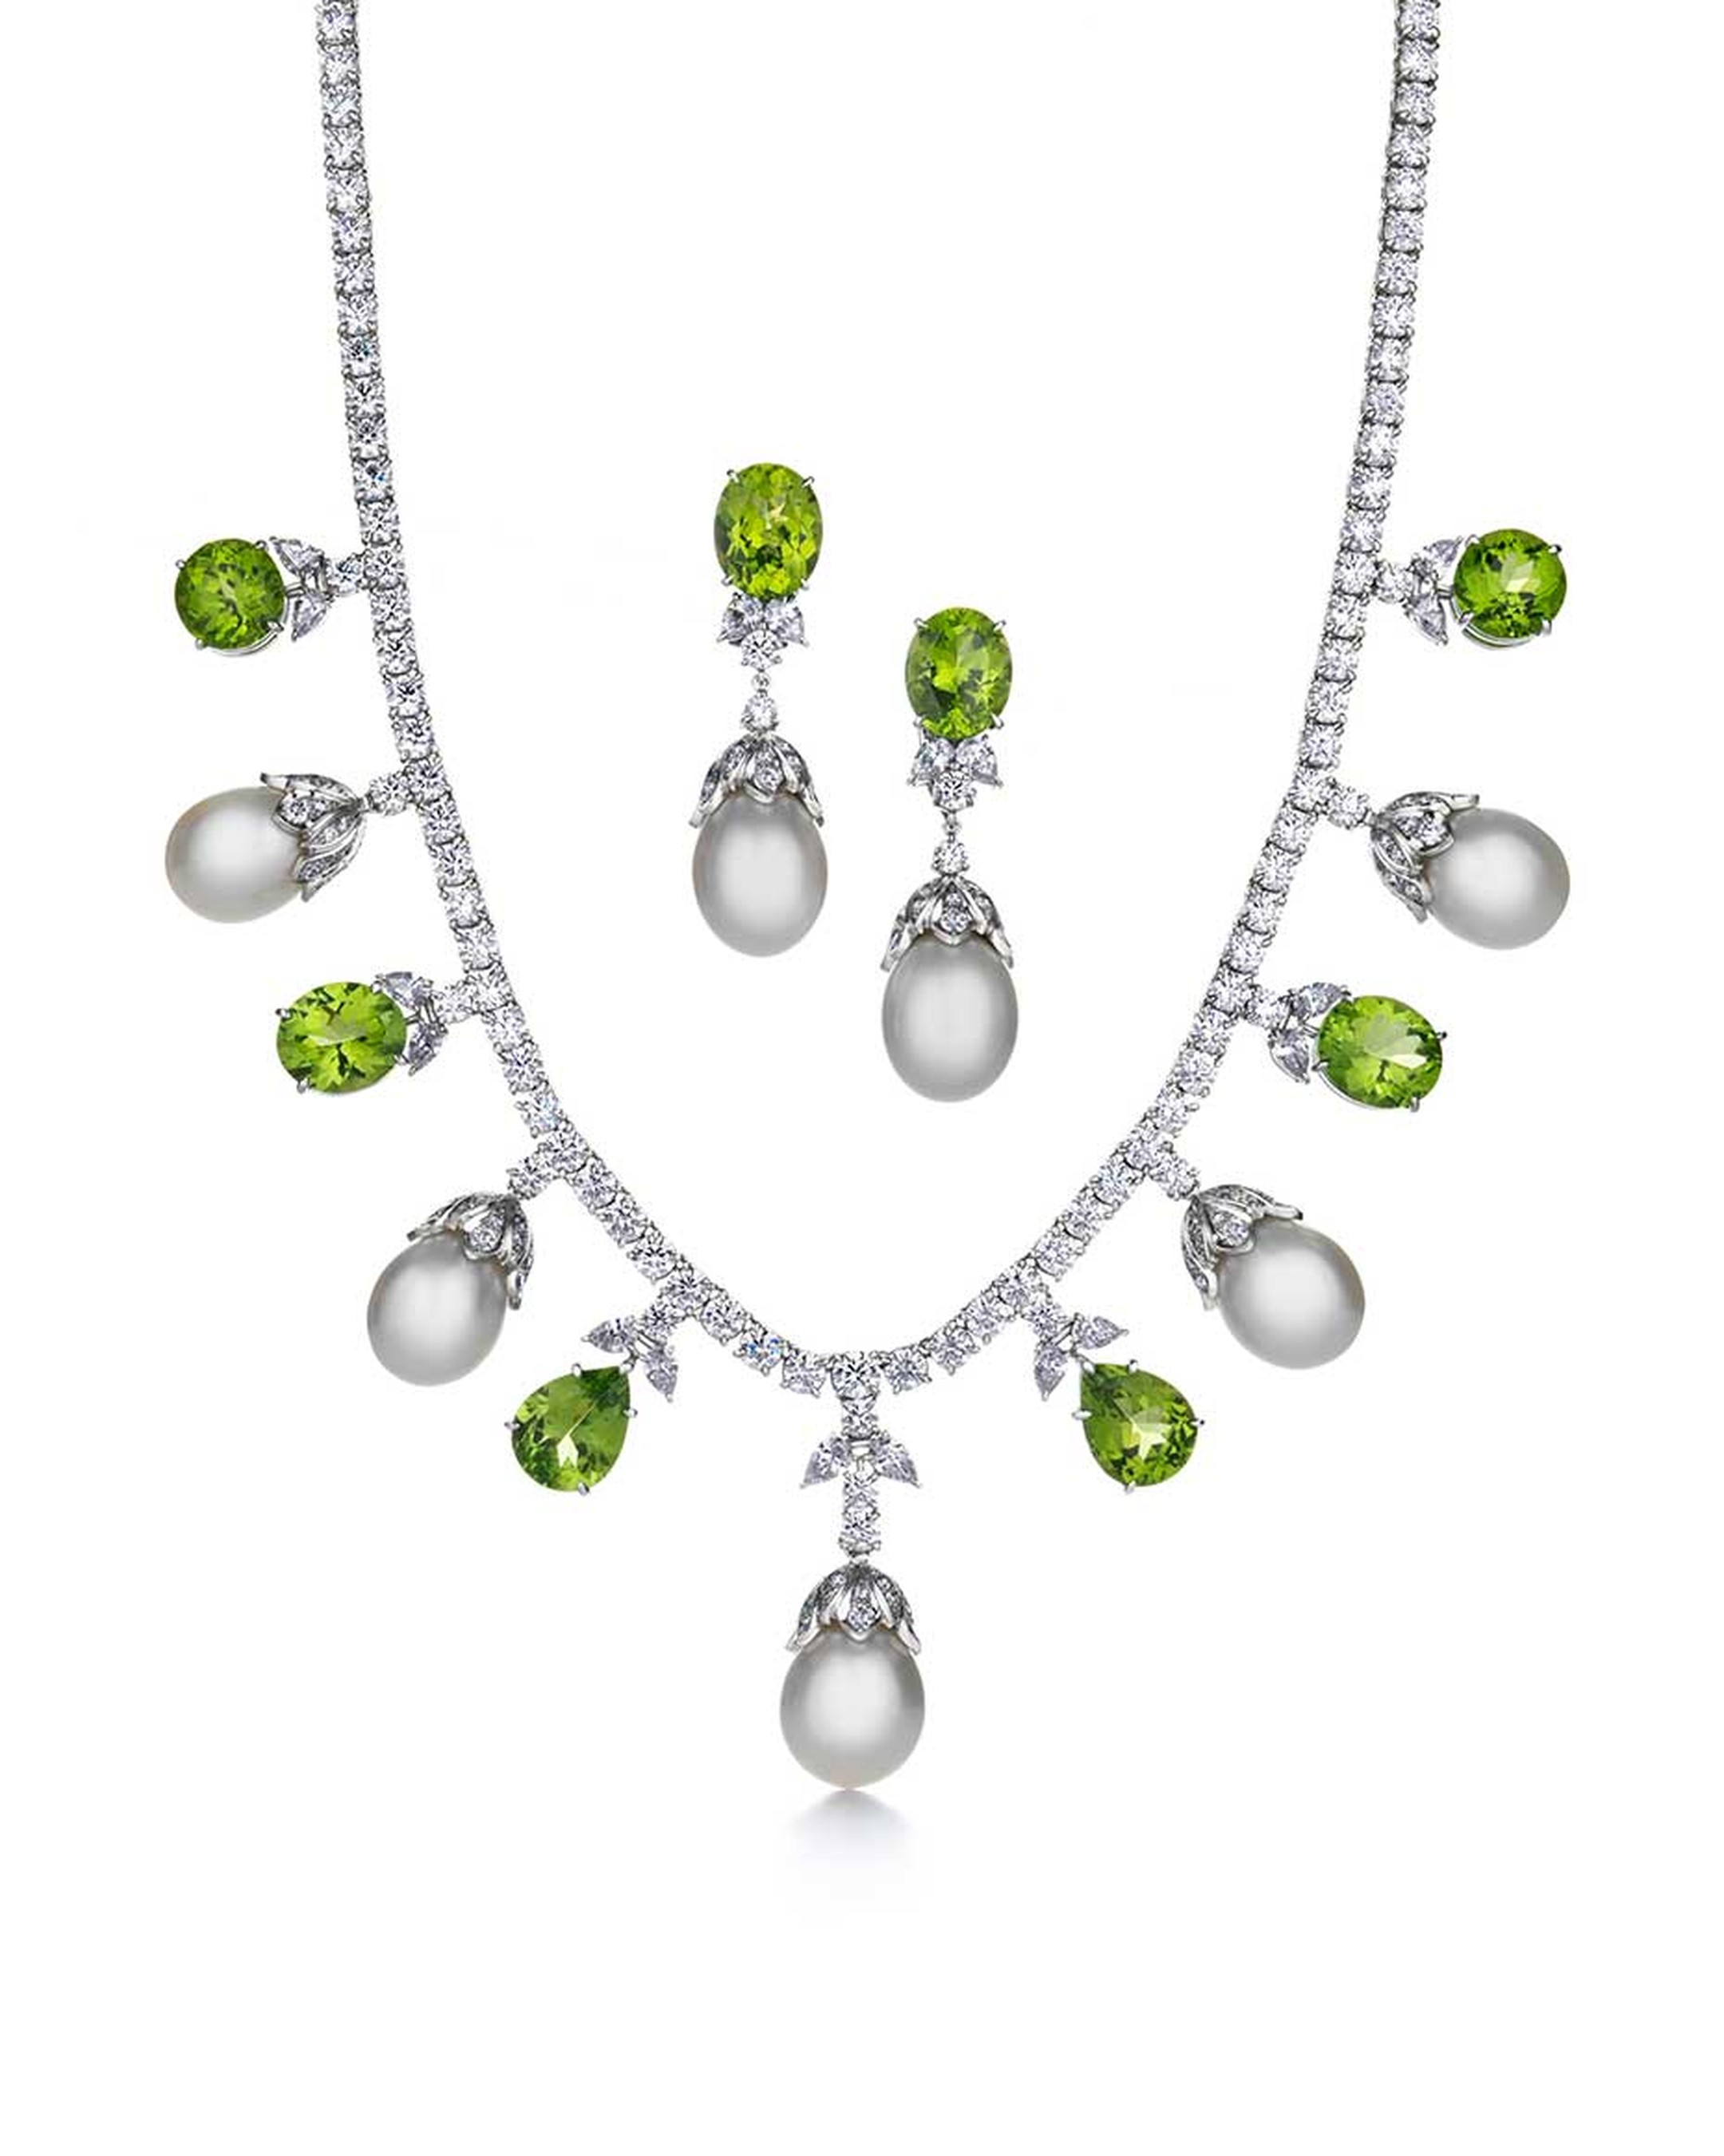 Tiffany & Co. Triple Strand platinum necklace and earrings featuring white South Sea pearls, bright green peridots and diamonds